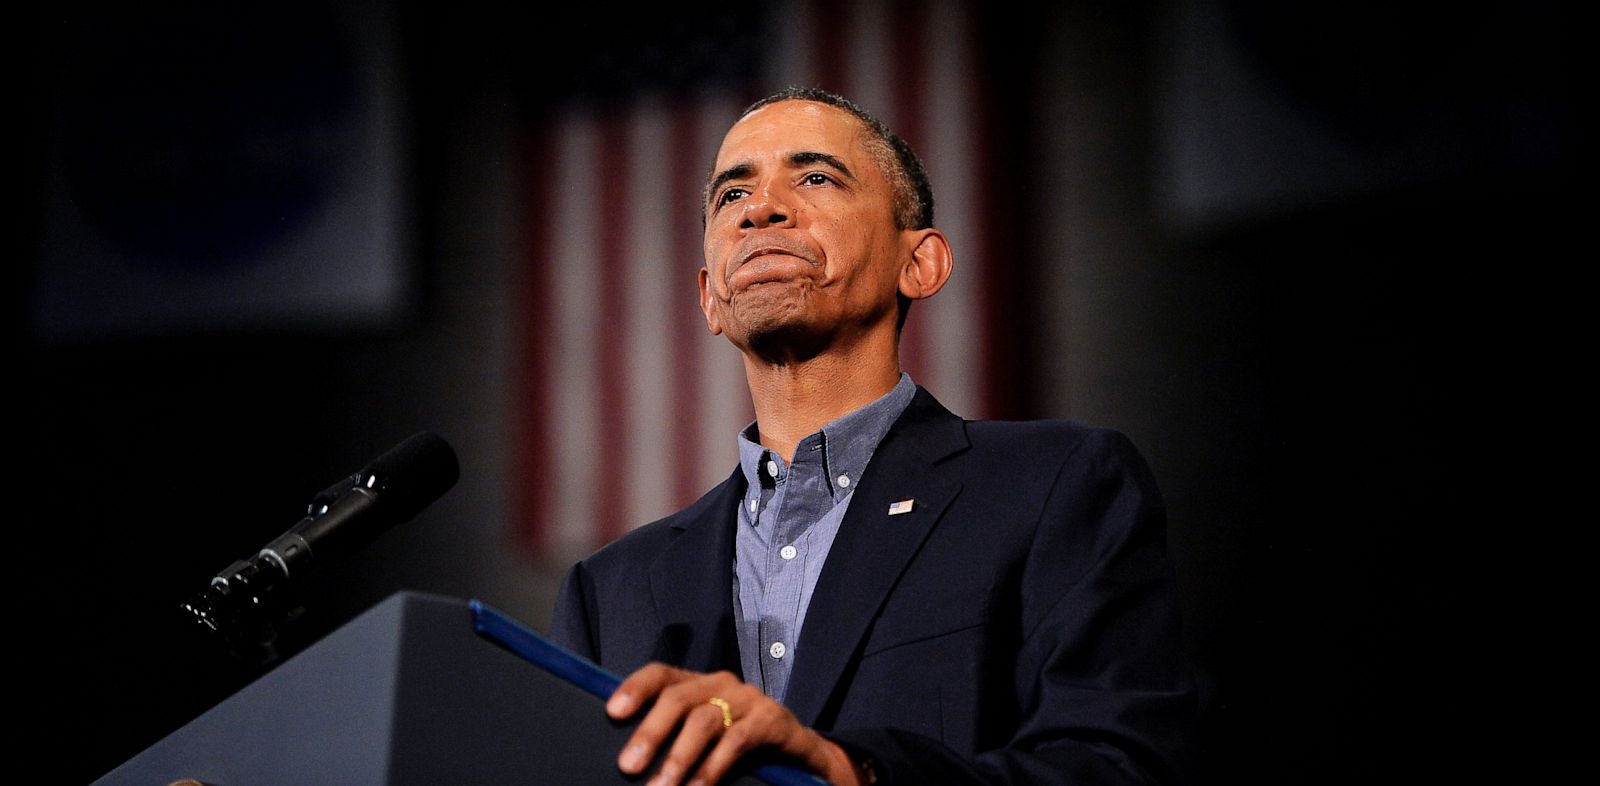 PHOTO: US President Barack Obama speaks on education at University of Buffalo, the State University of New York, on August 22, 2013 in Buffalo, New York.